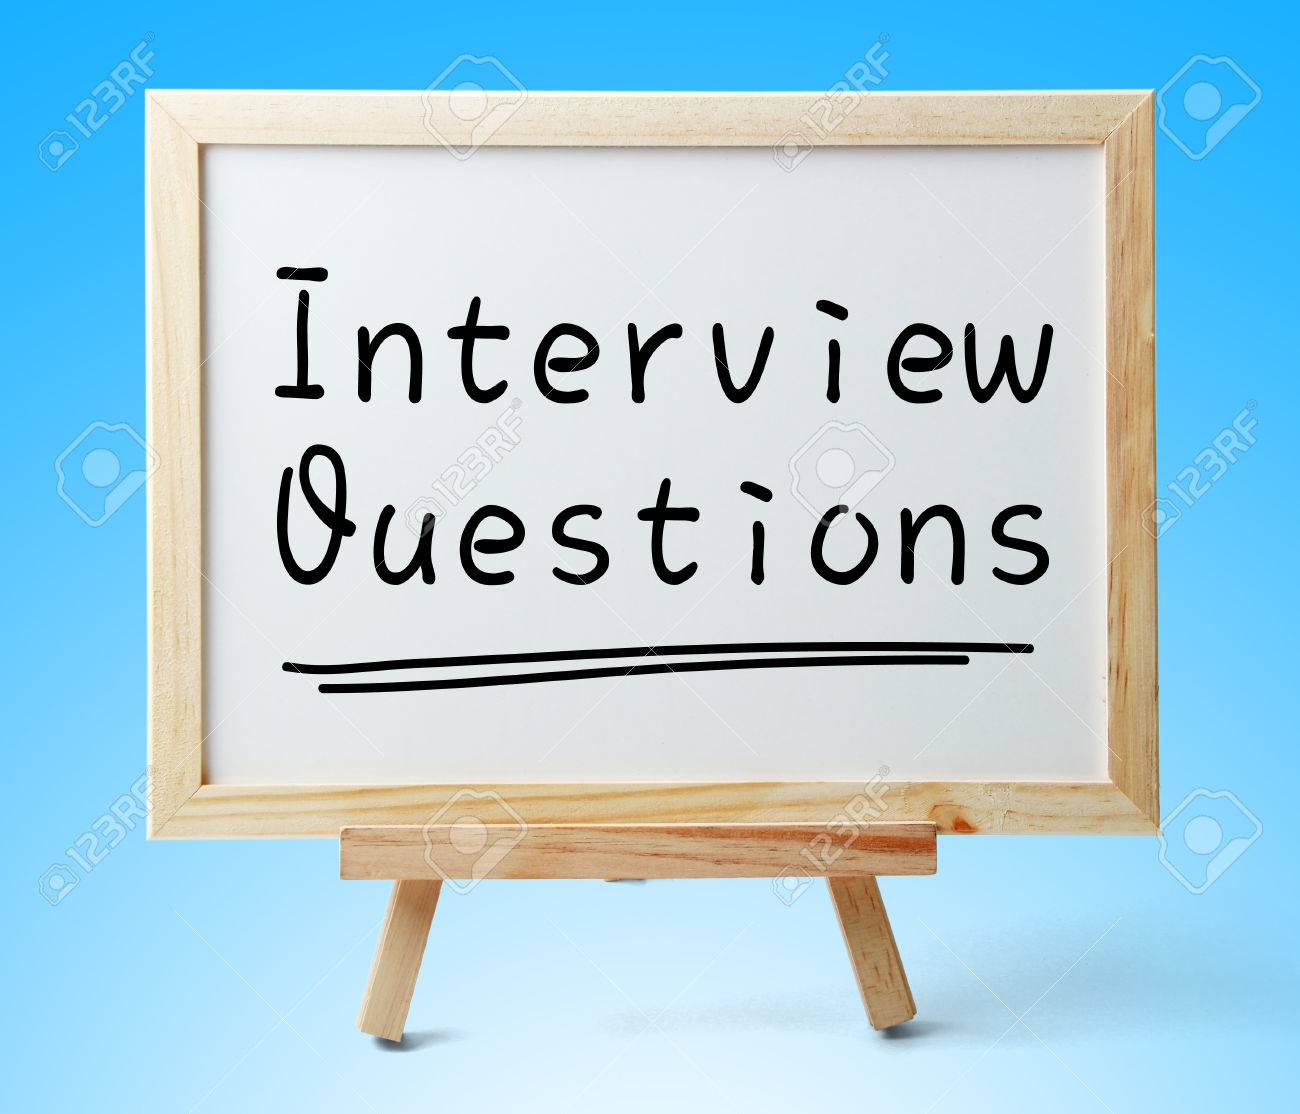 whiteboard text interview questions is on the blue background stock photo whiteboard text interview questions is on the blue background